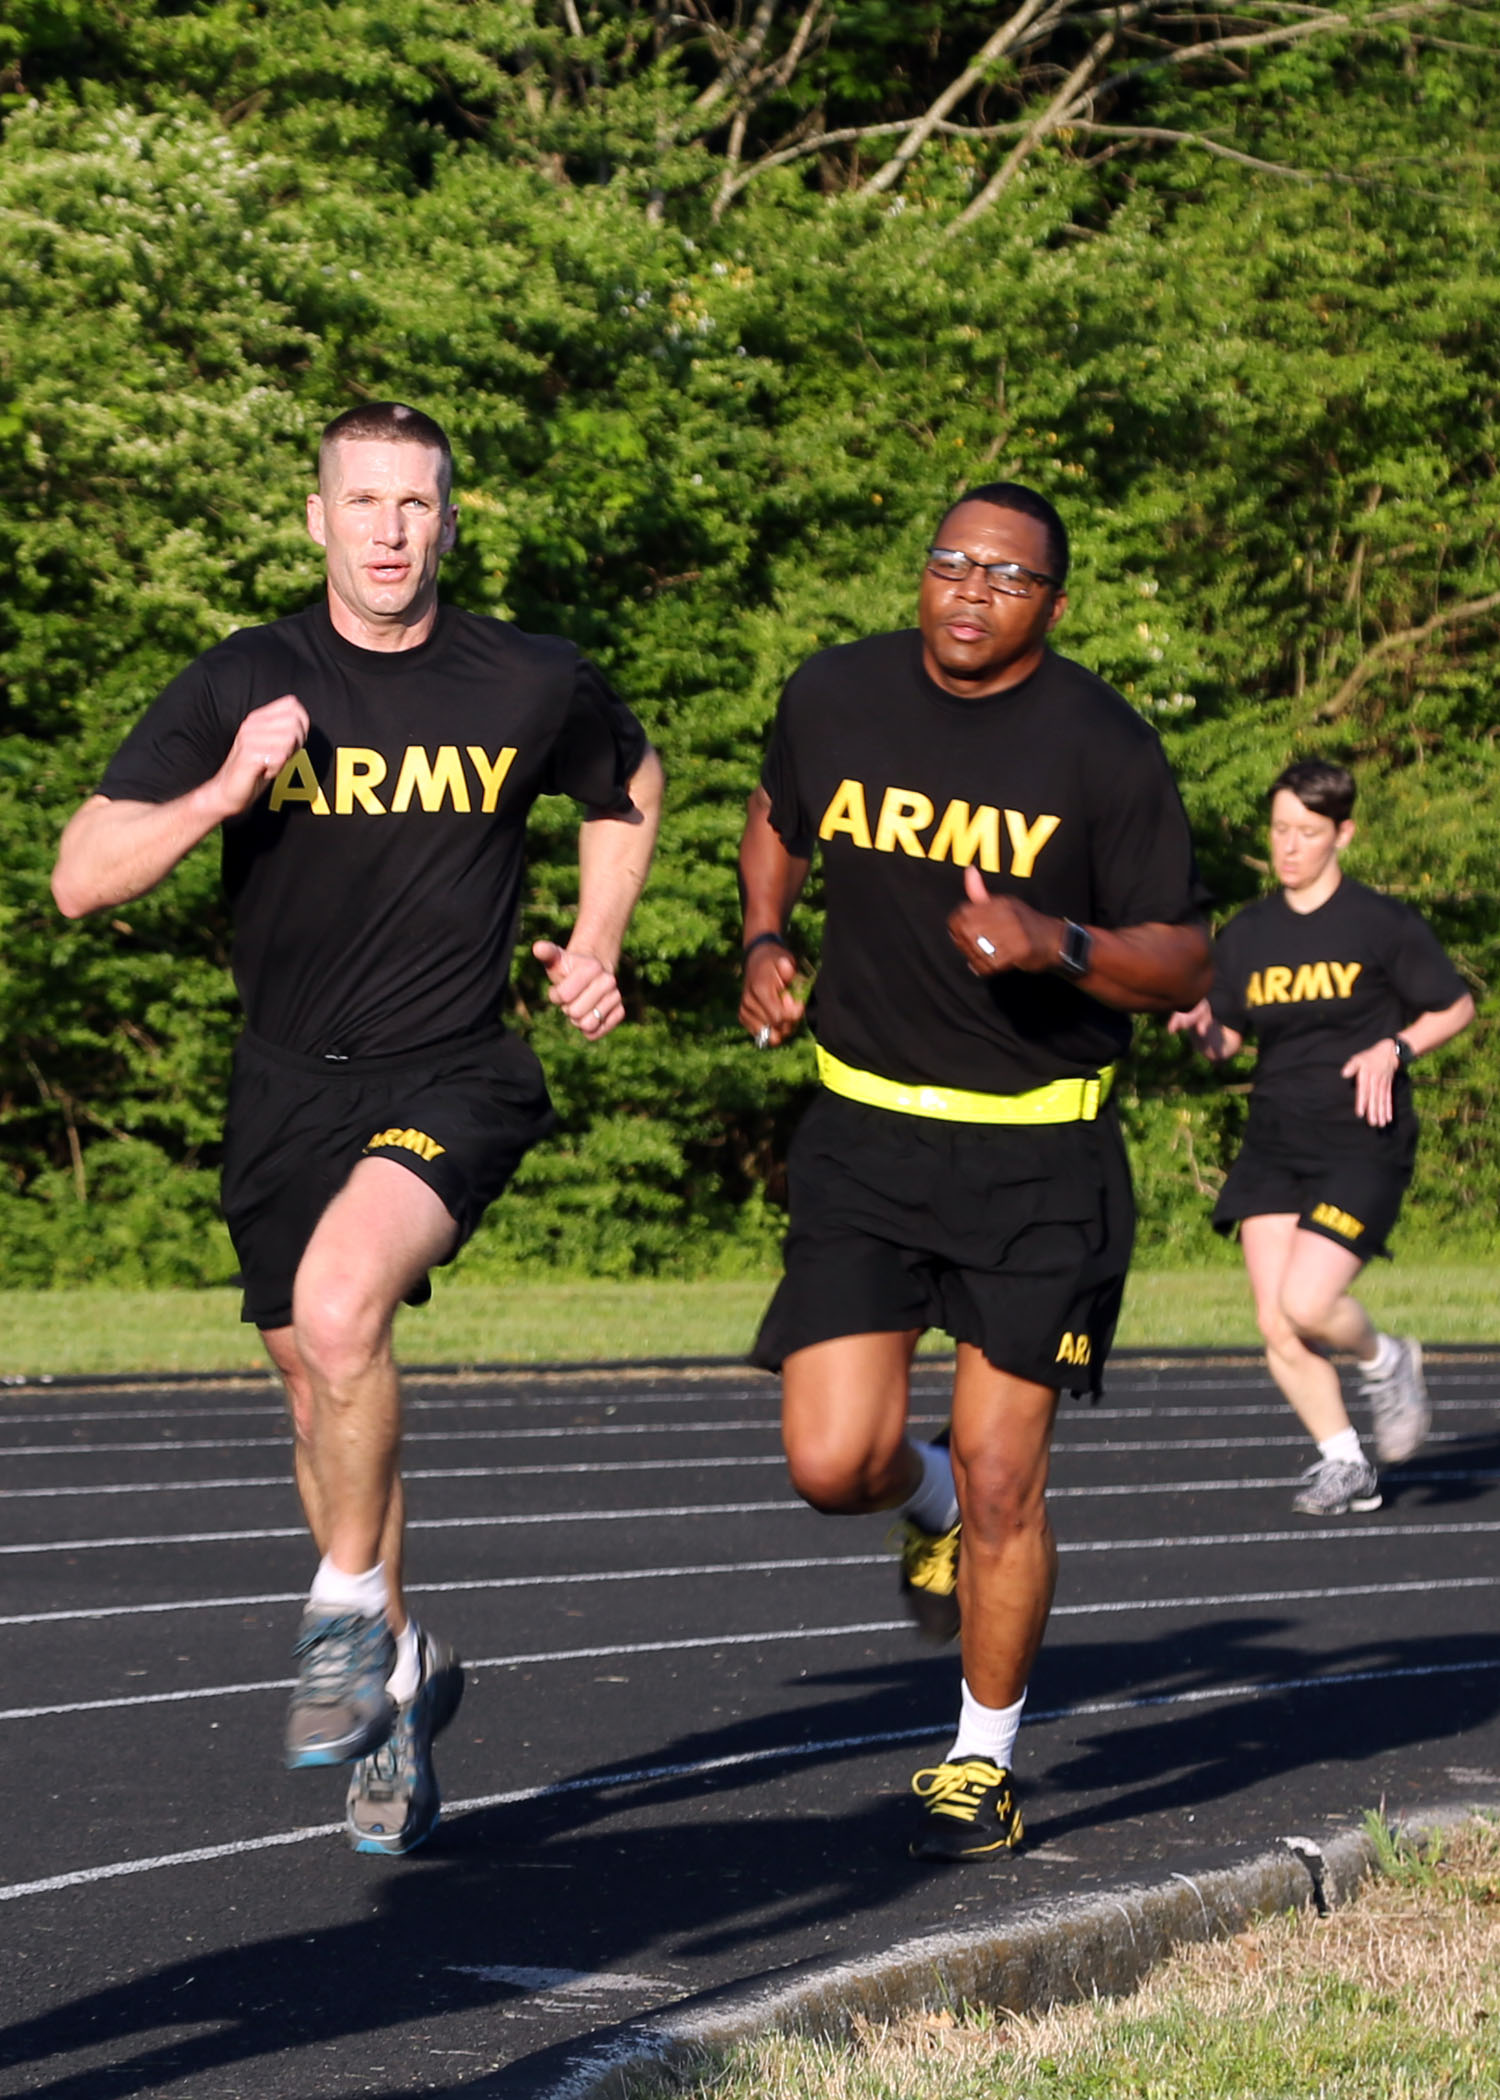 Army apft regulation tc - Army Apft Regulation Tc 34